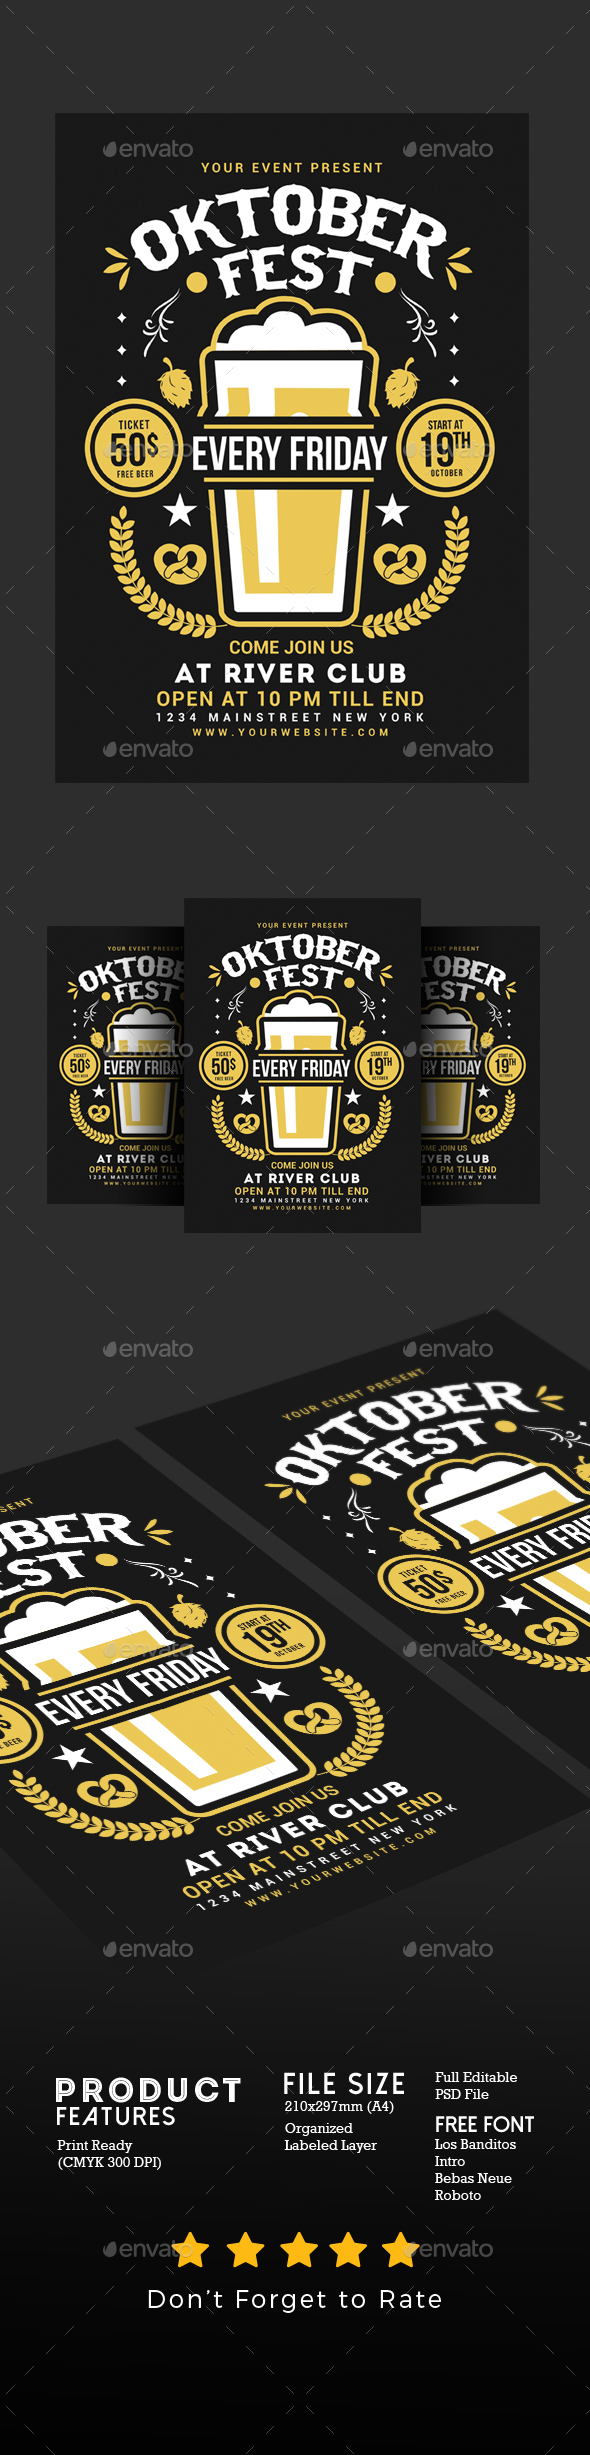 Oktober Fest Flyer - Events Flyers